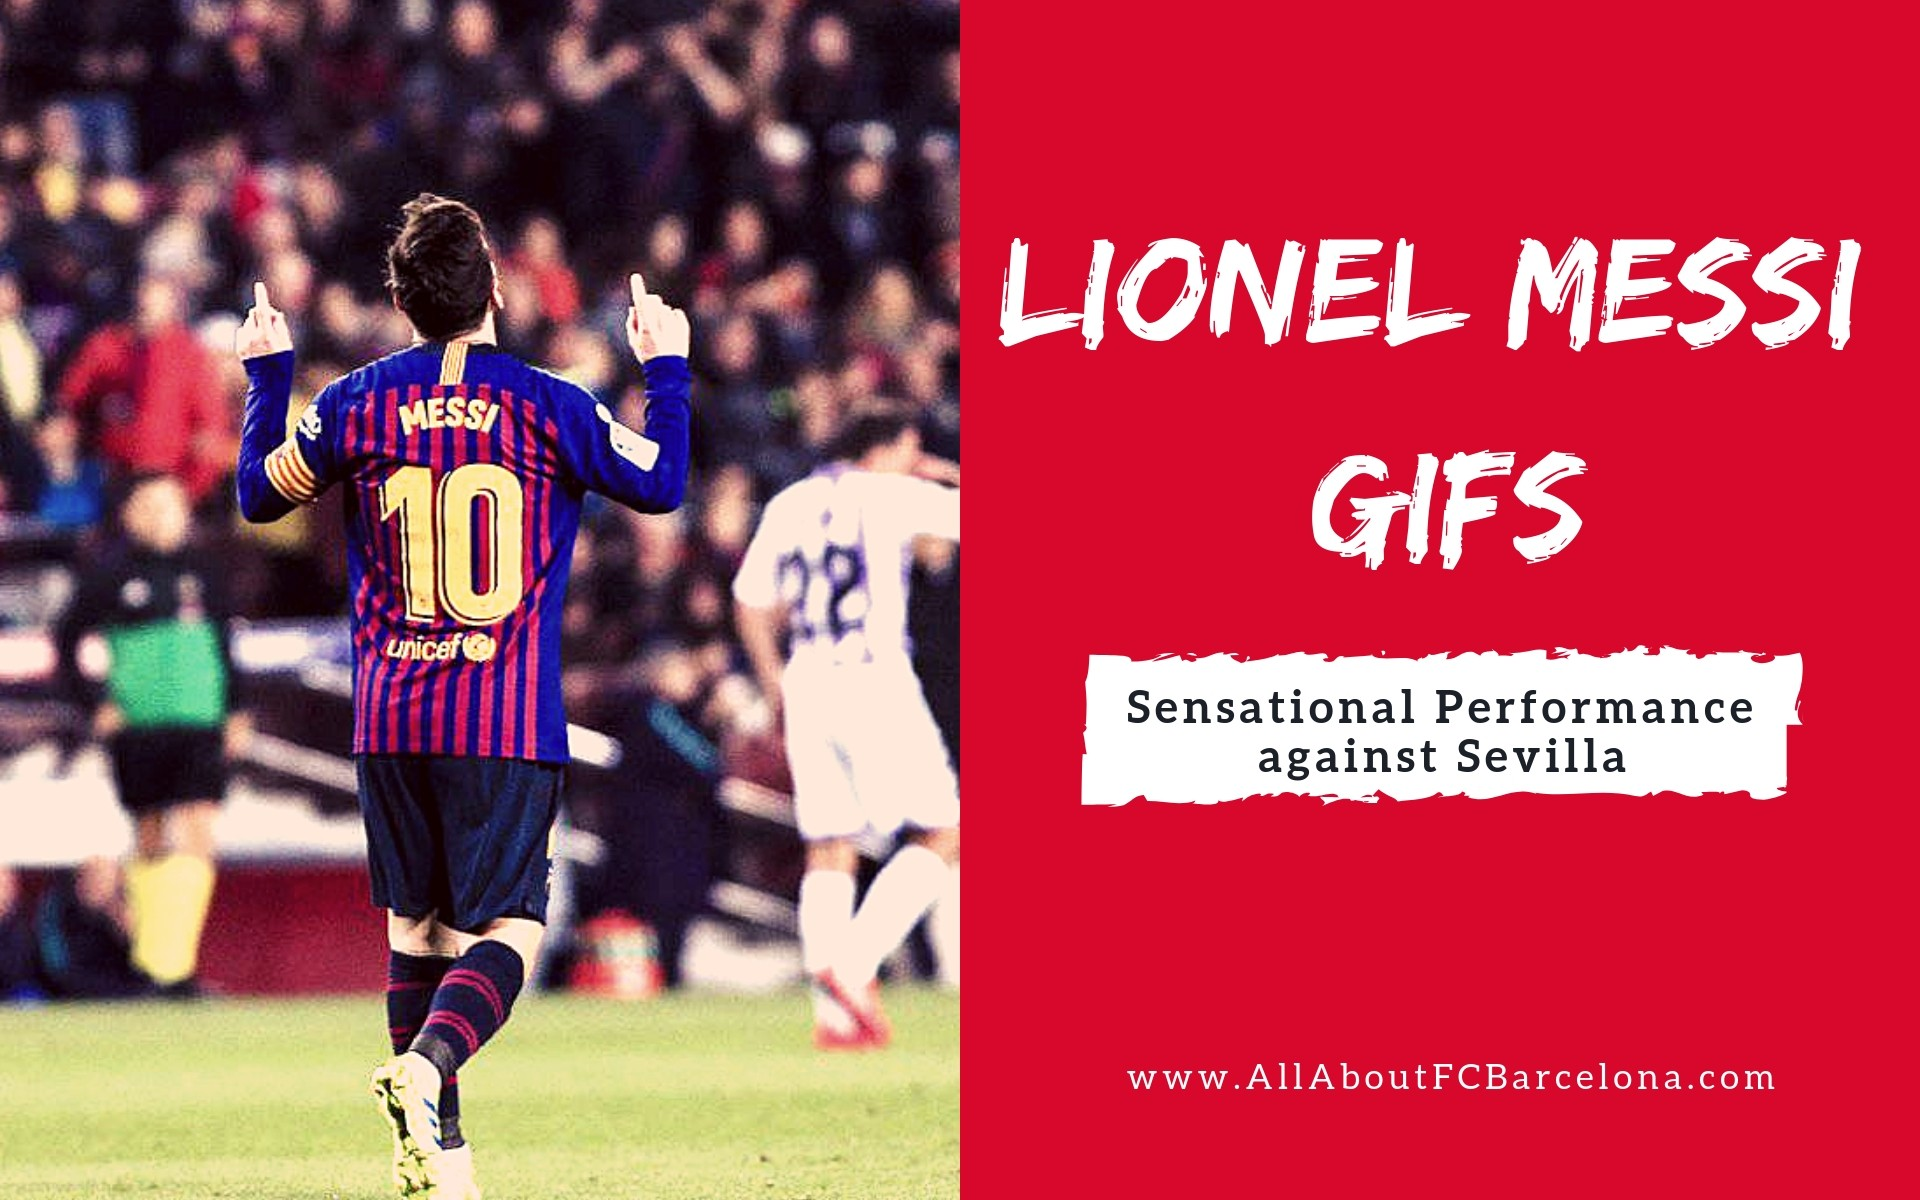 Lionel Messi against Sevilla - GIF Photos - AllAboutFCBarcelona.com